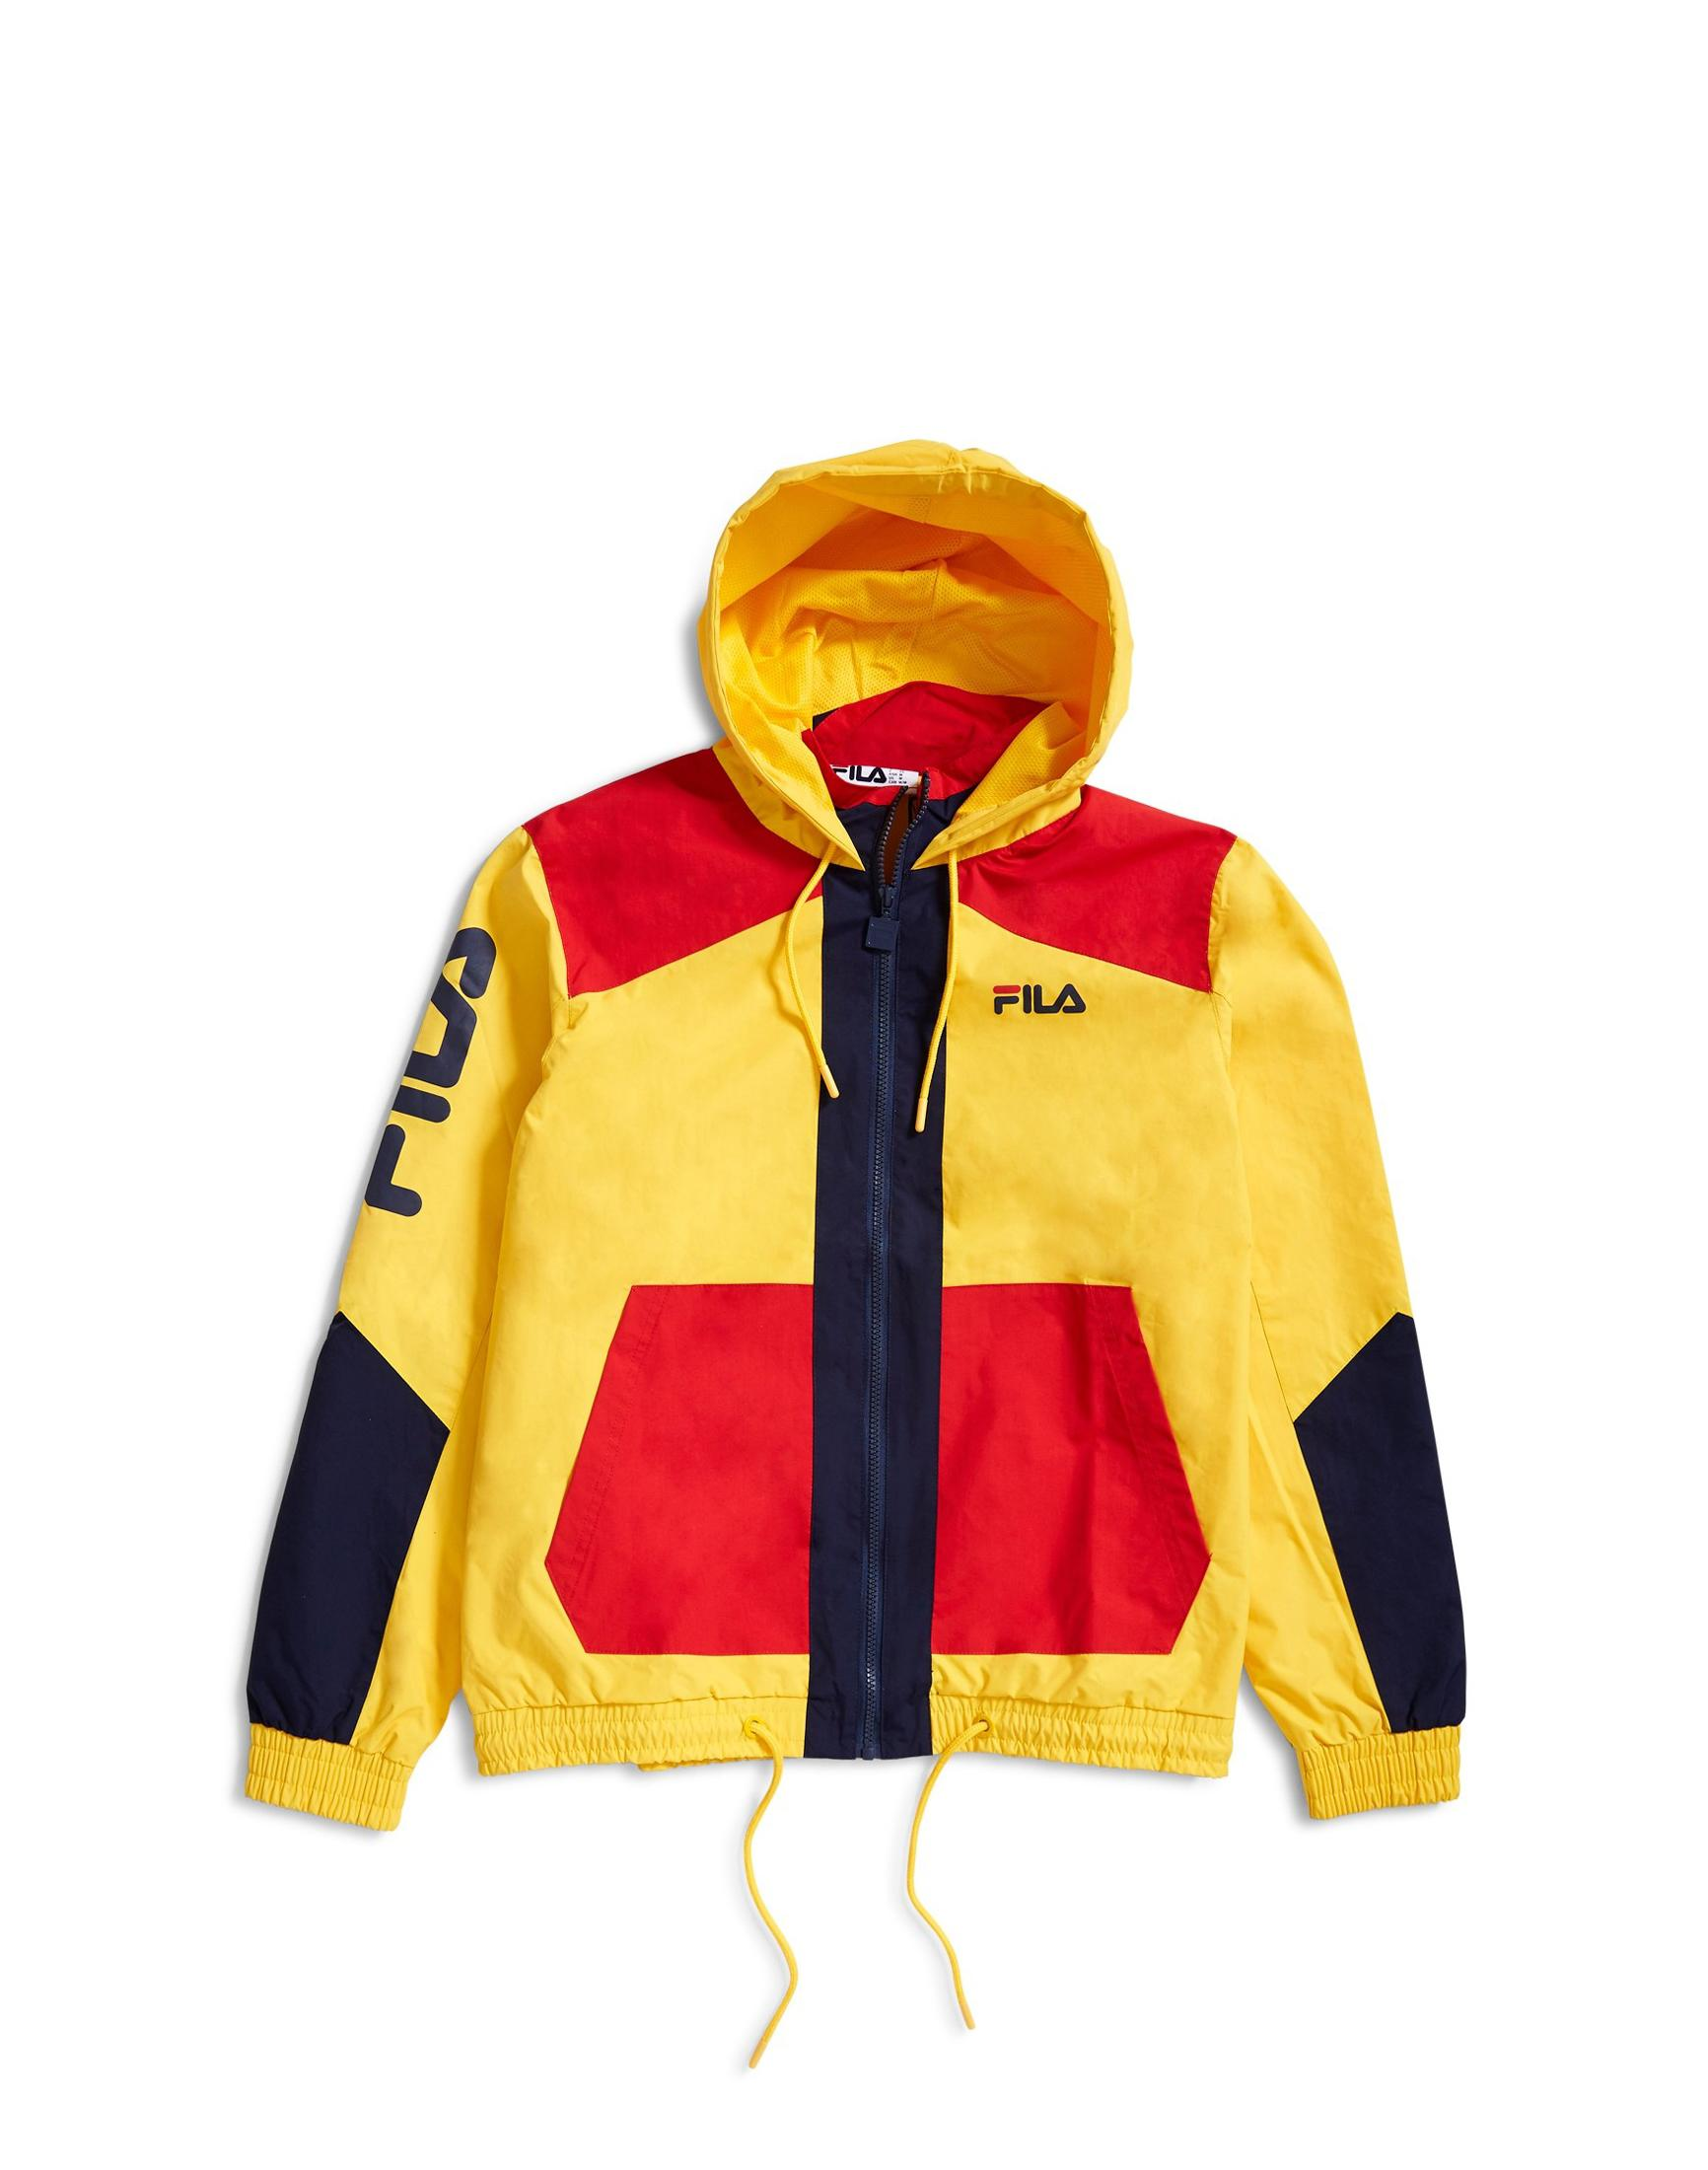 8f502c04a4e Fila Black Line Earl Colour Block Jacket Yellow in Yellow for Men - Lyst